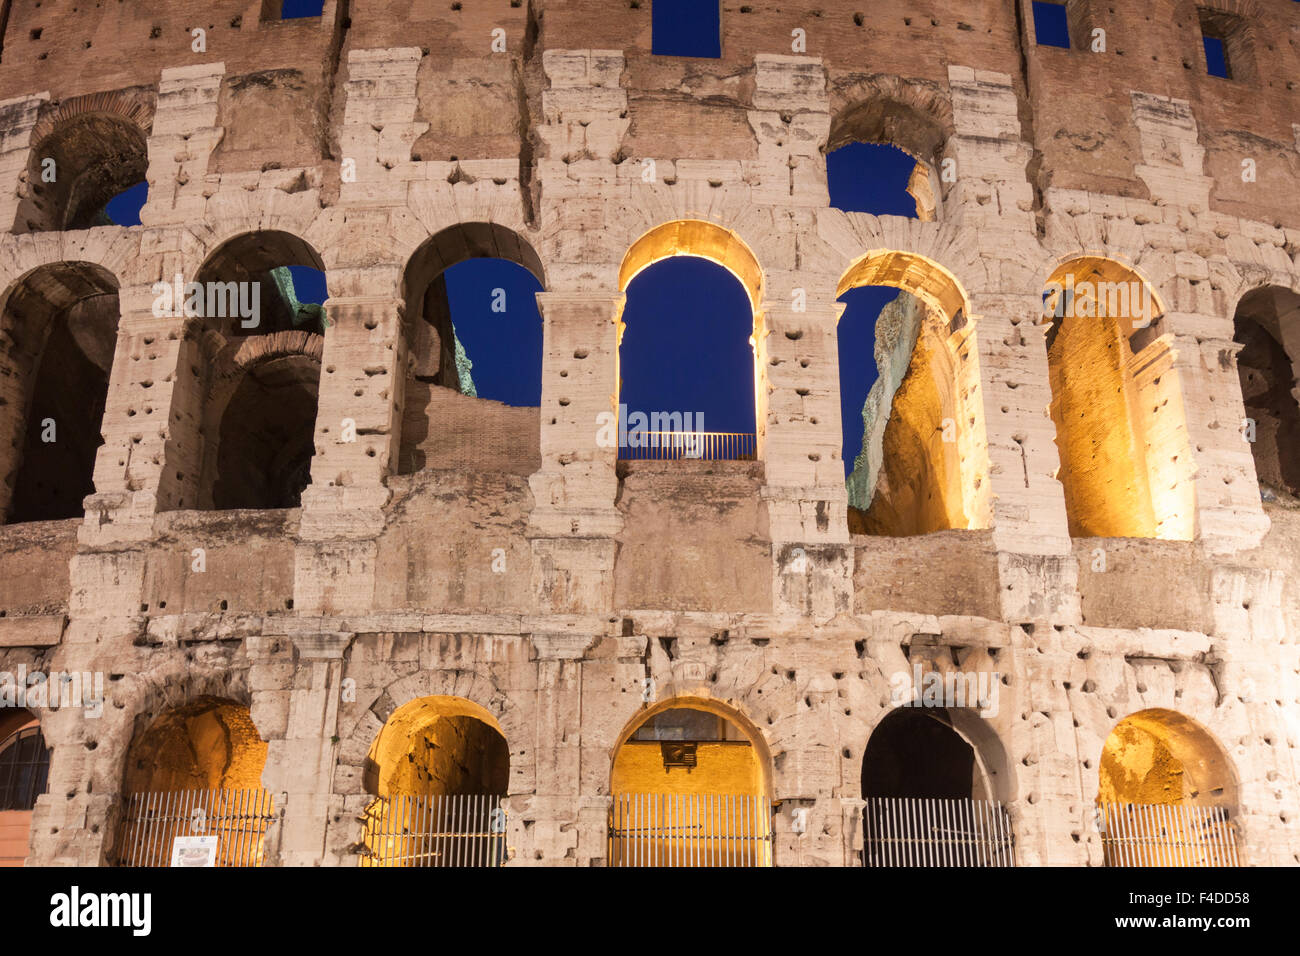 Detail of illuminated arches of the Coliseum at dusk. Rome, Italy - Stock Image